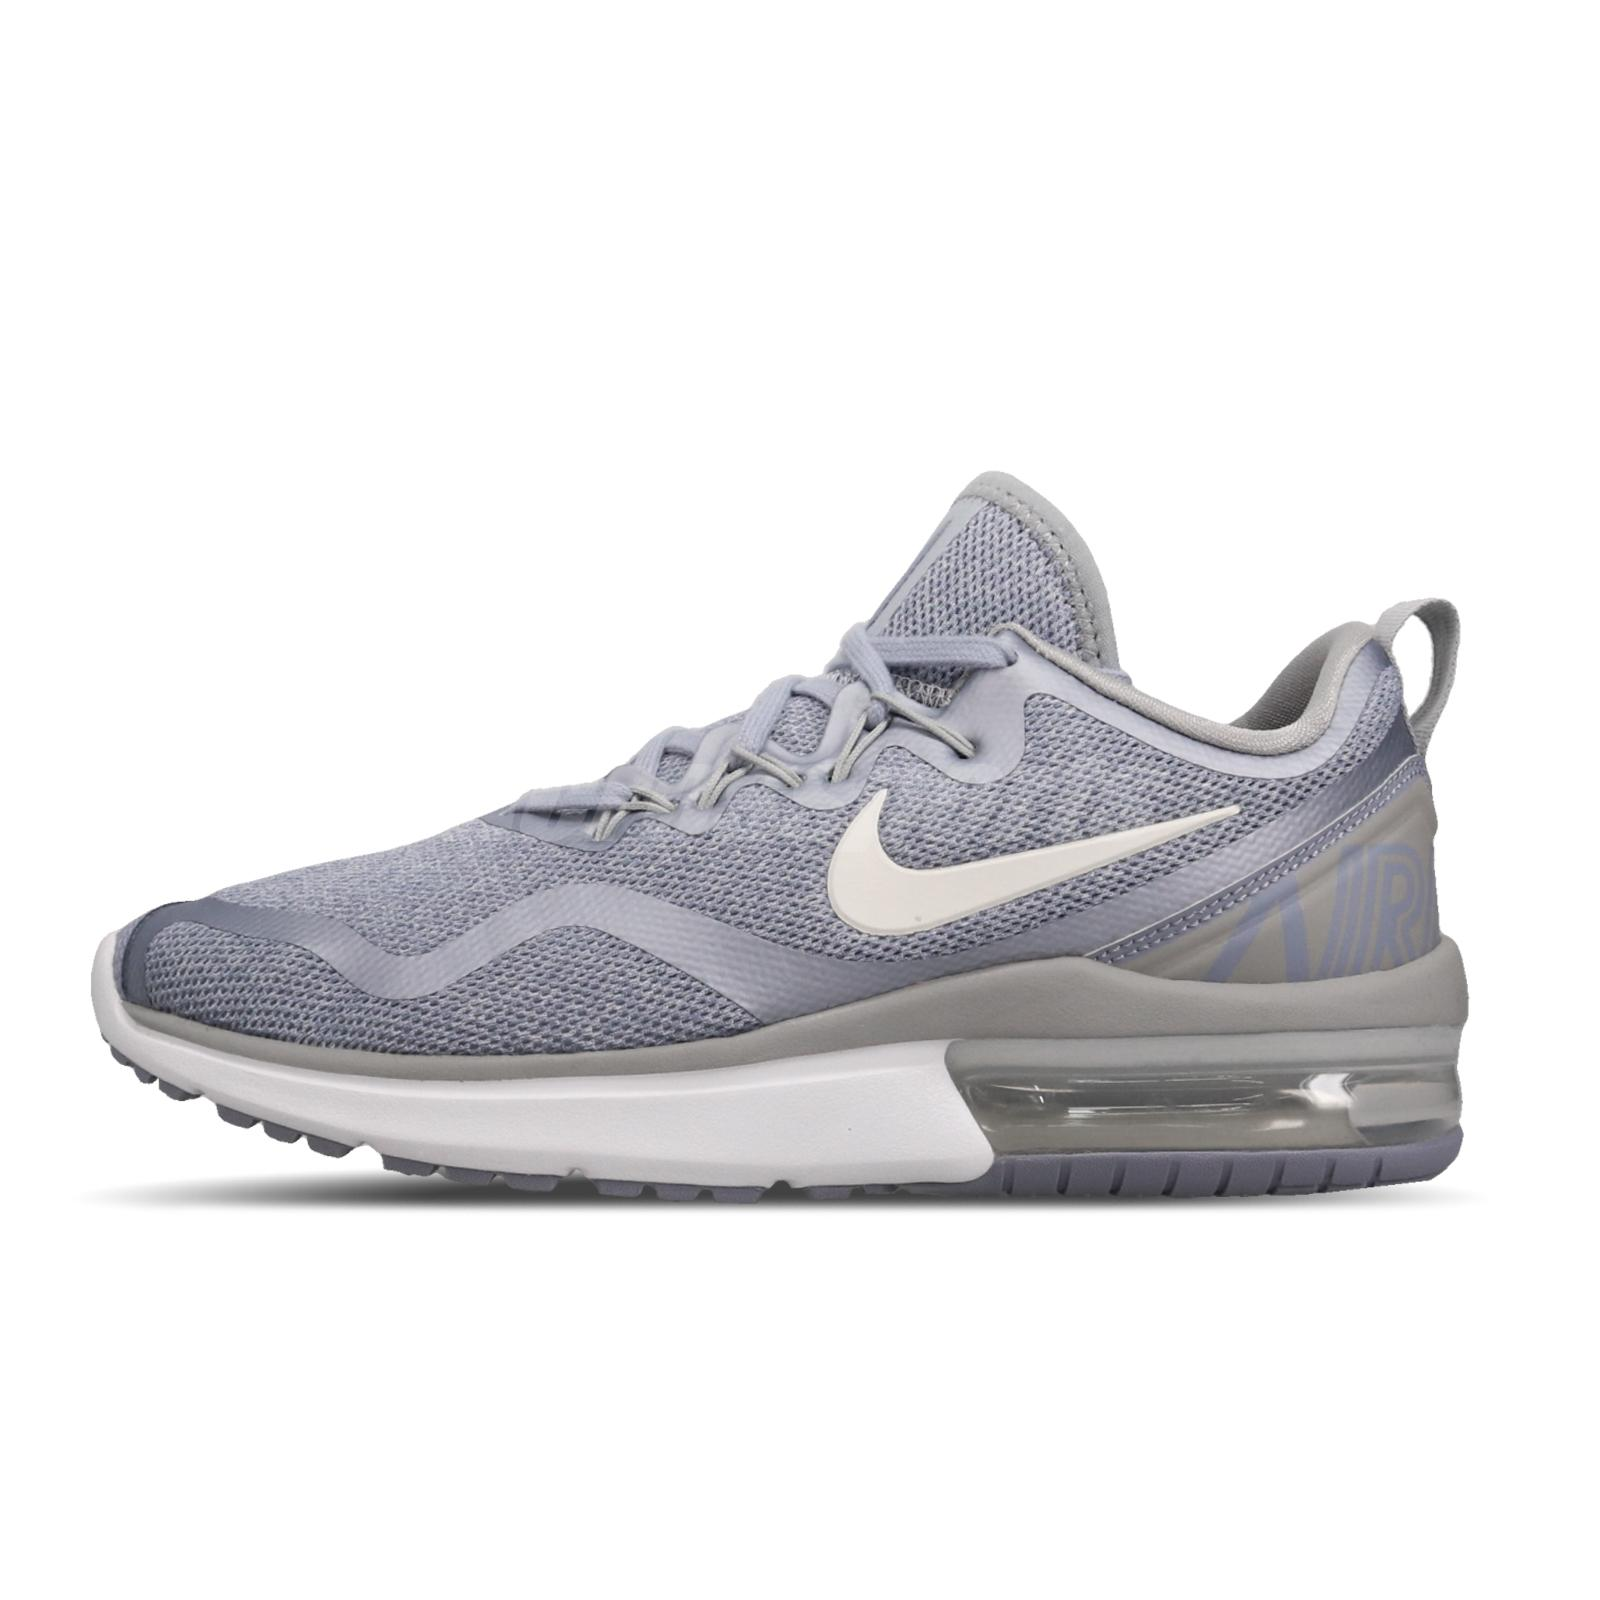 Fury Pure Platinum Wmns Max Shoes Running Air Womens Nike 007 Aa5740 l1KcFJ